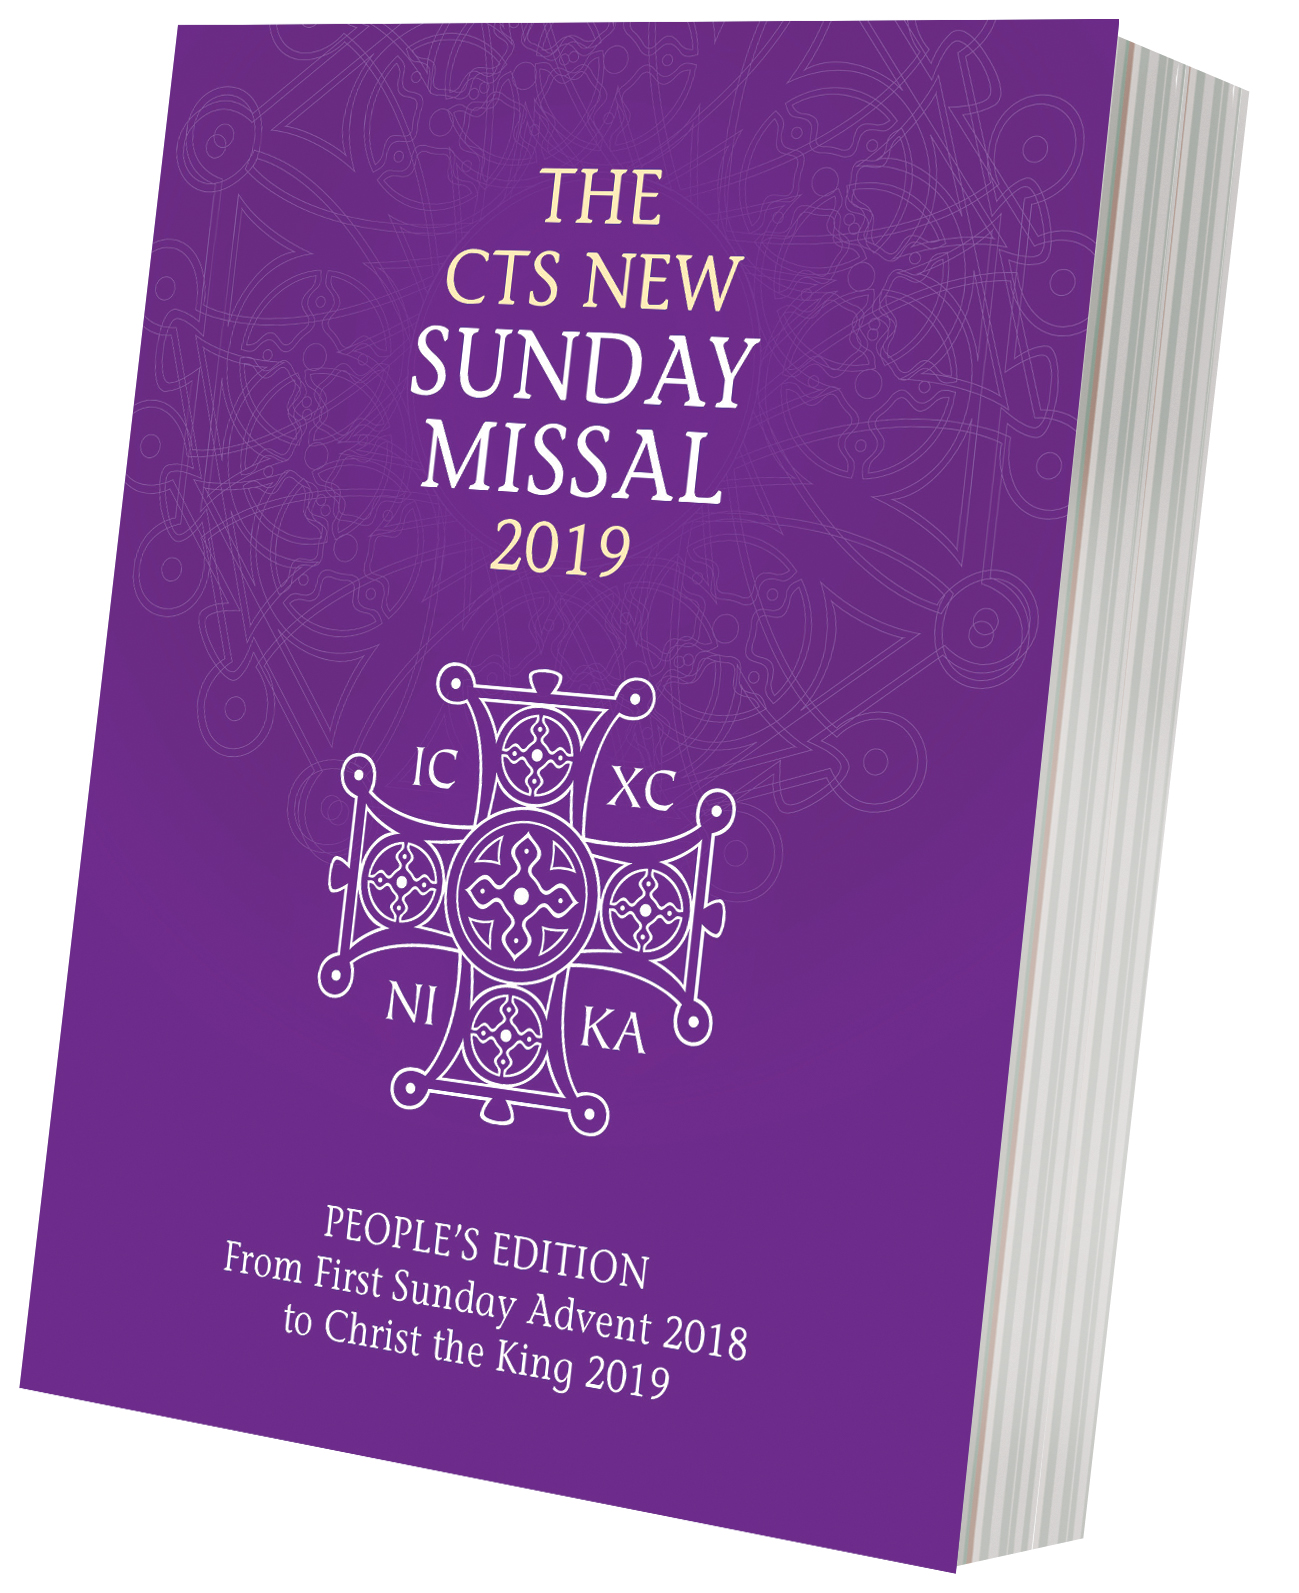 The CTS New Sunday Missal 2019